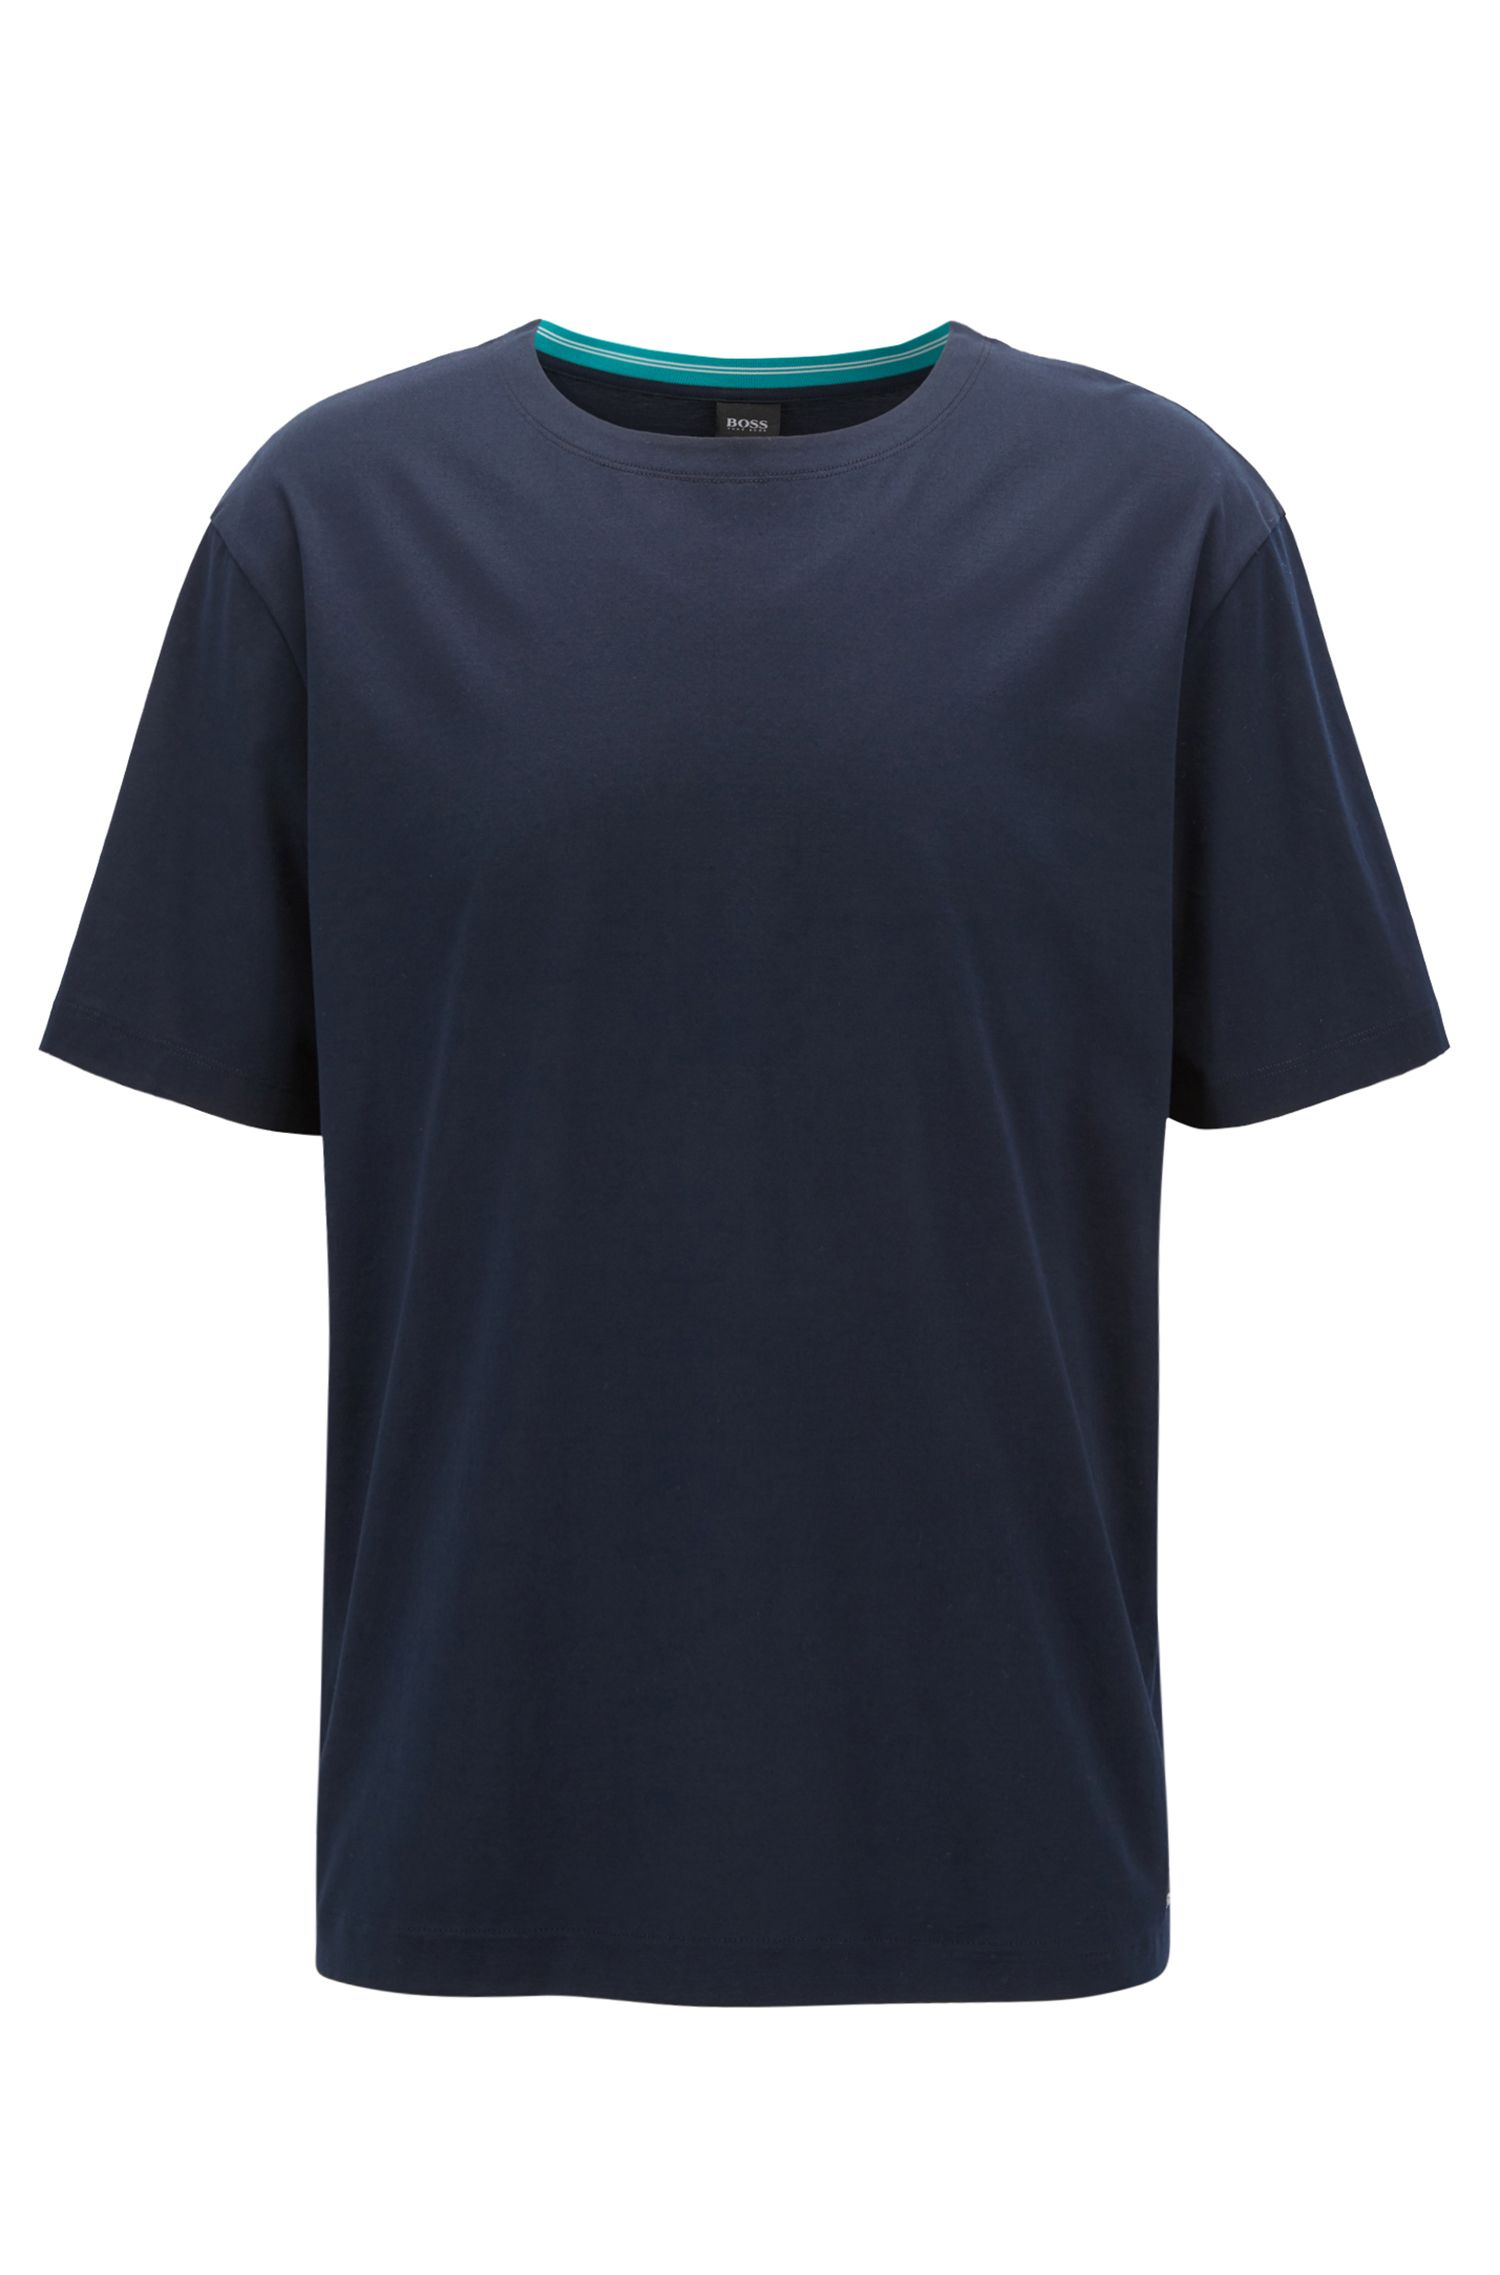 Mercerised-cotton T-shirt with contrast collar band